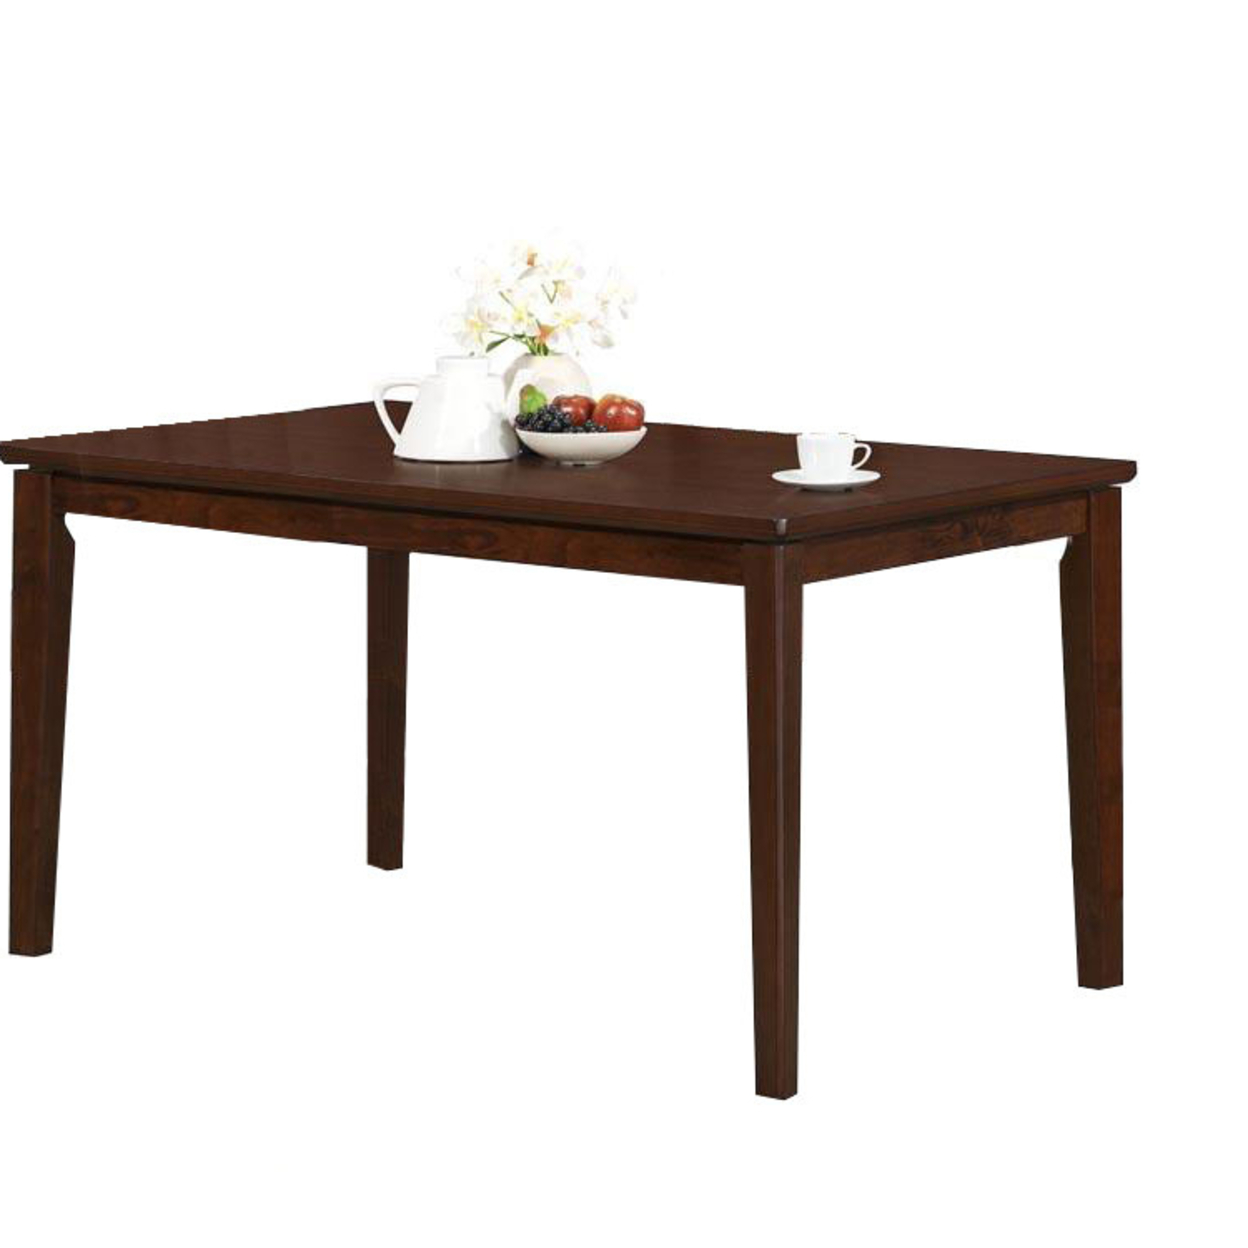 38 X 60 Dining Table Search